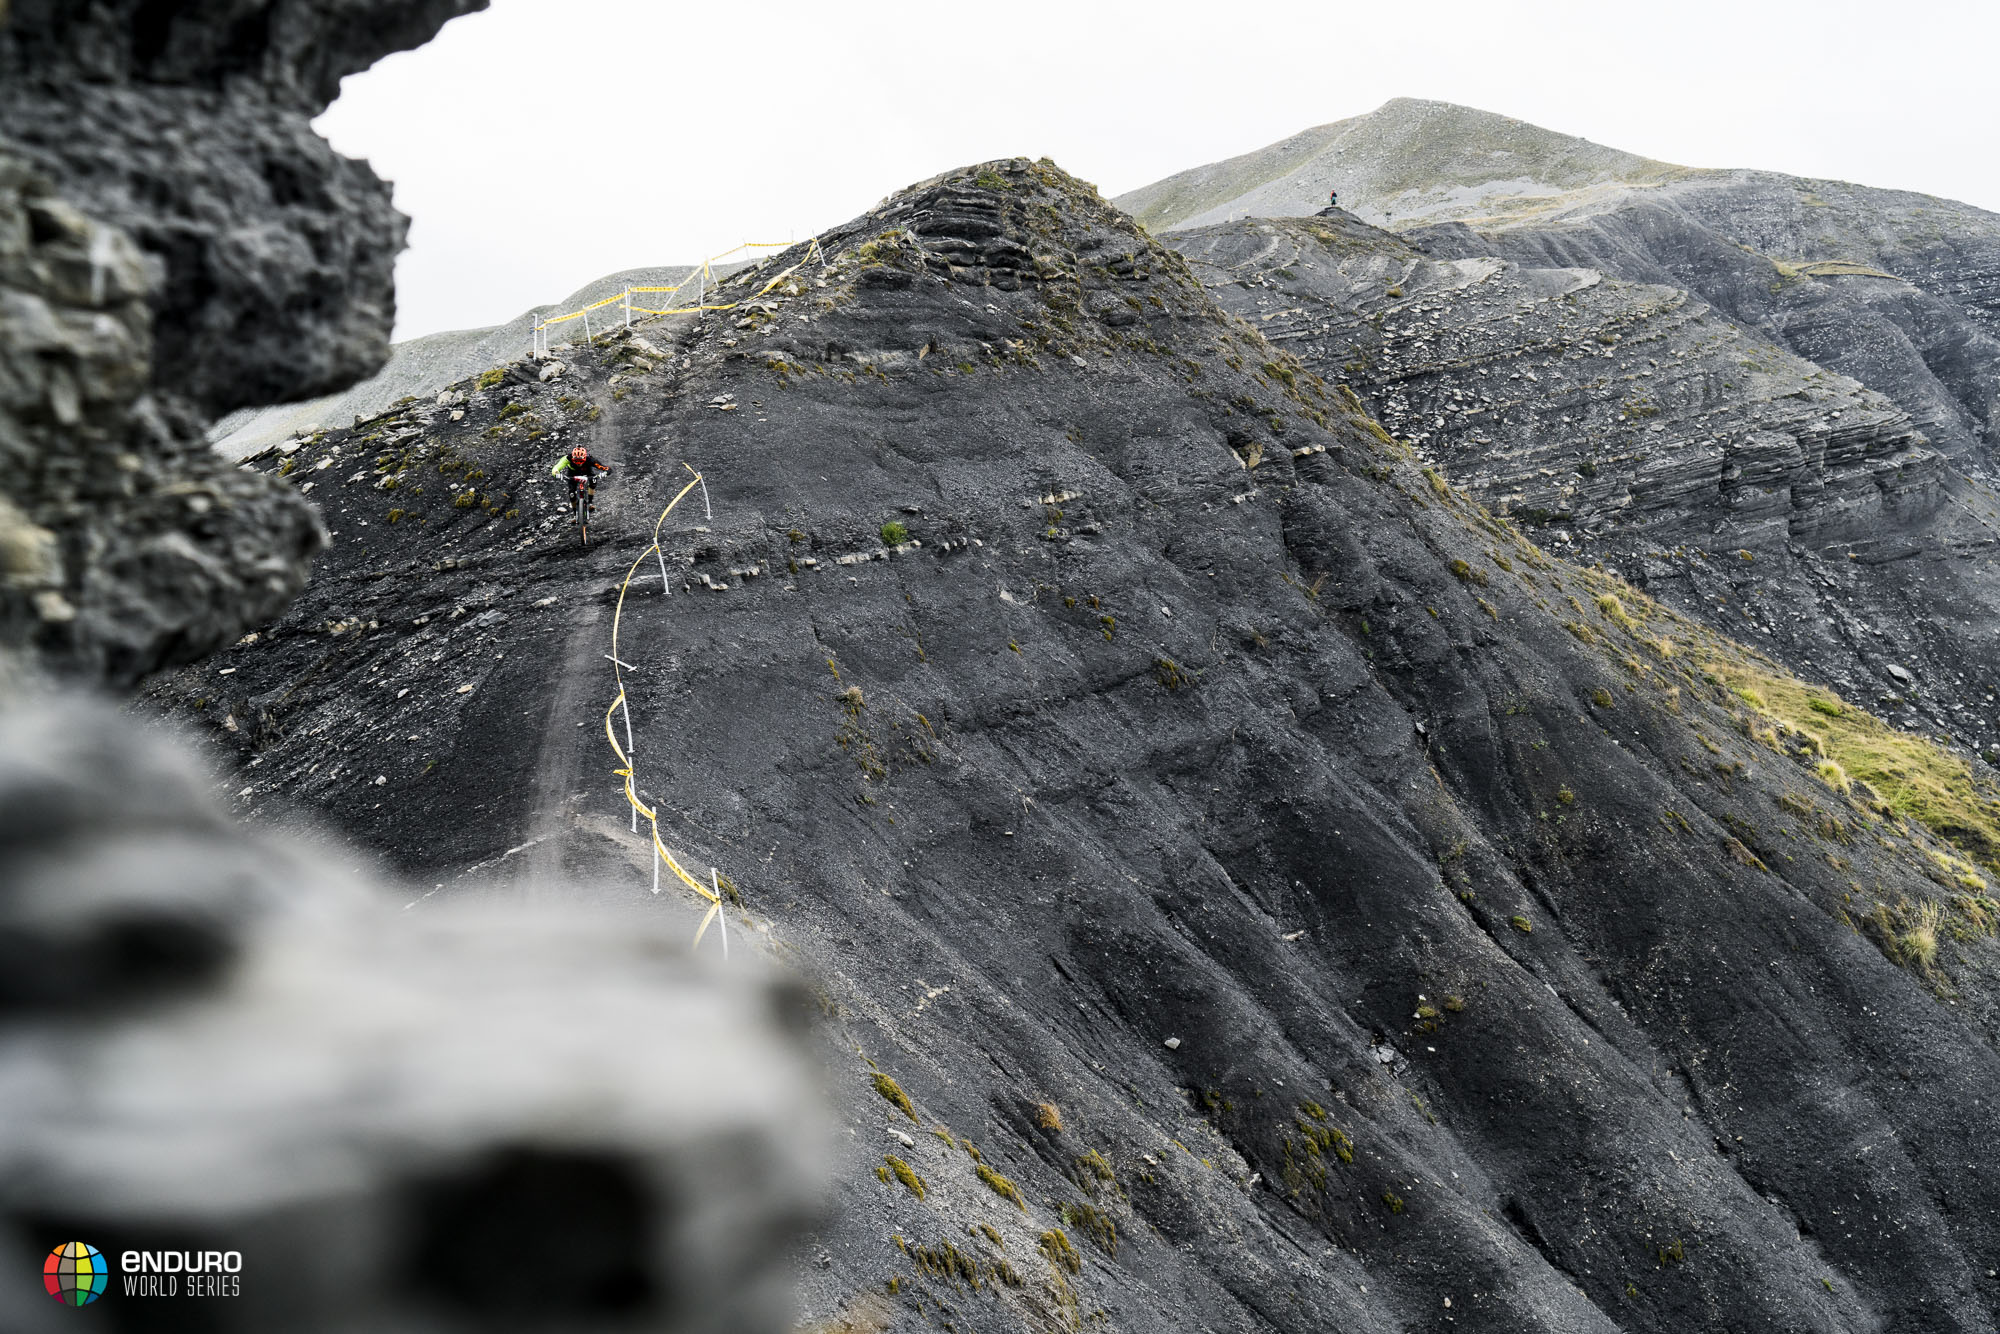 Jagged rocks and grey earth is the name of the game here